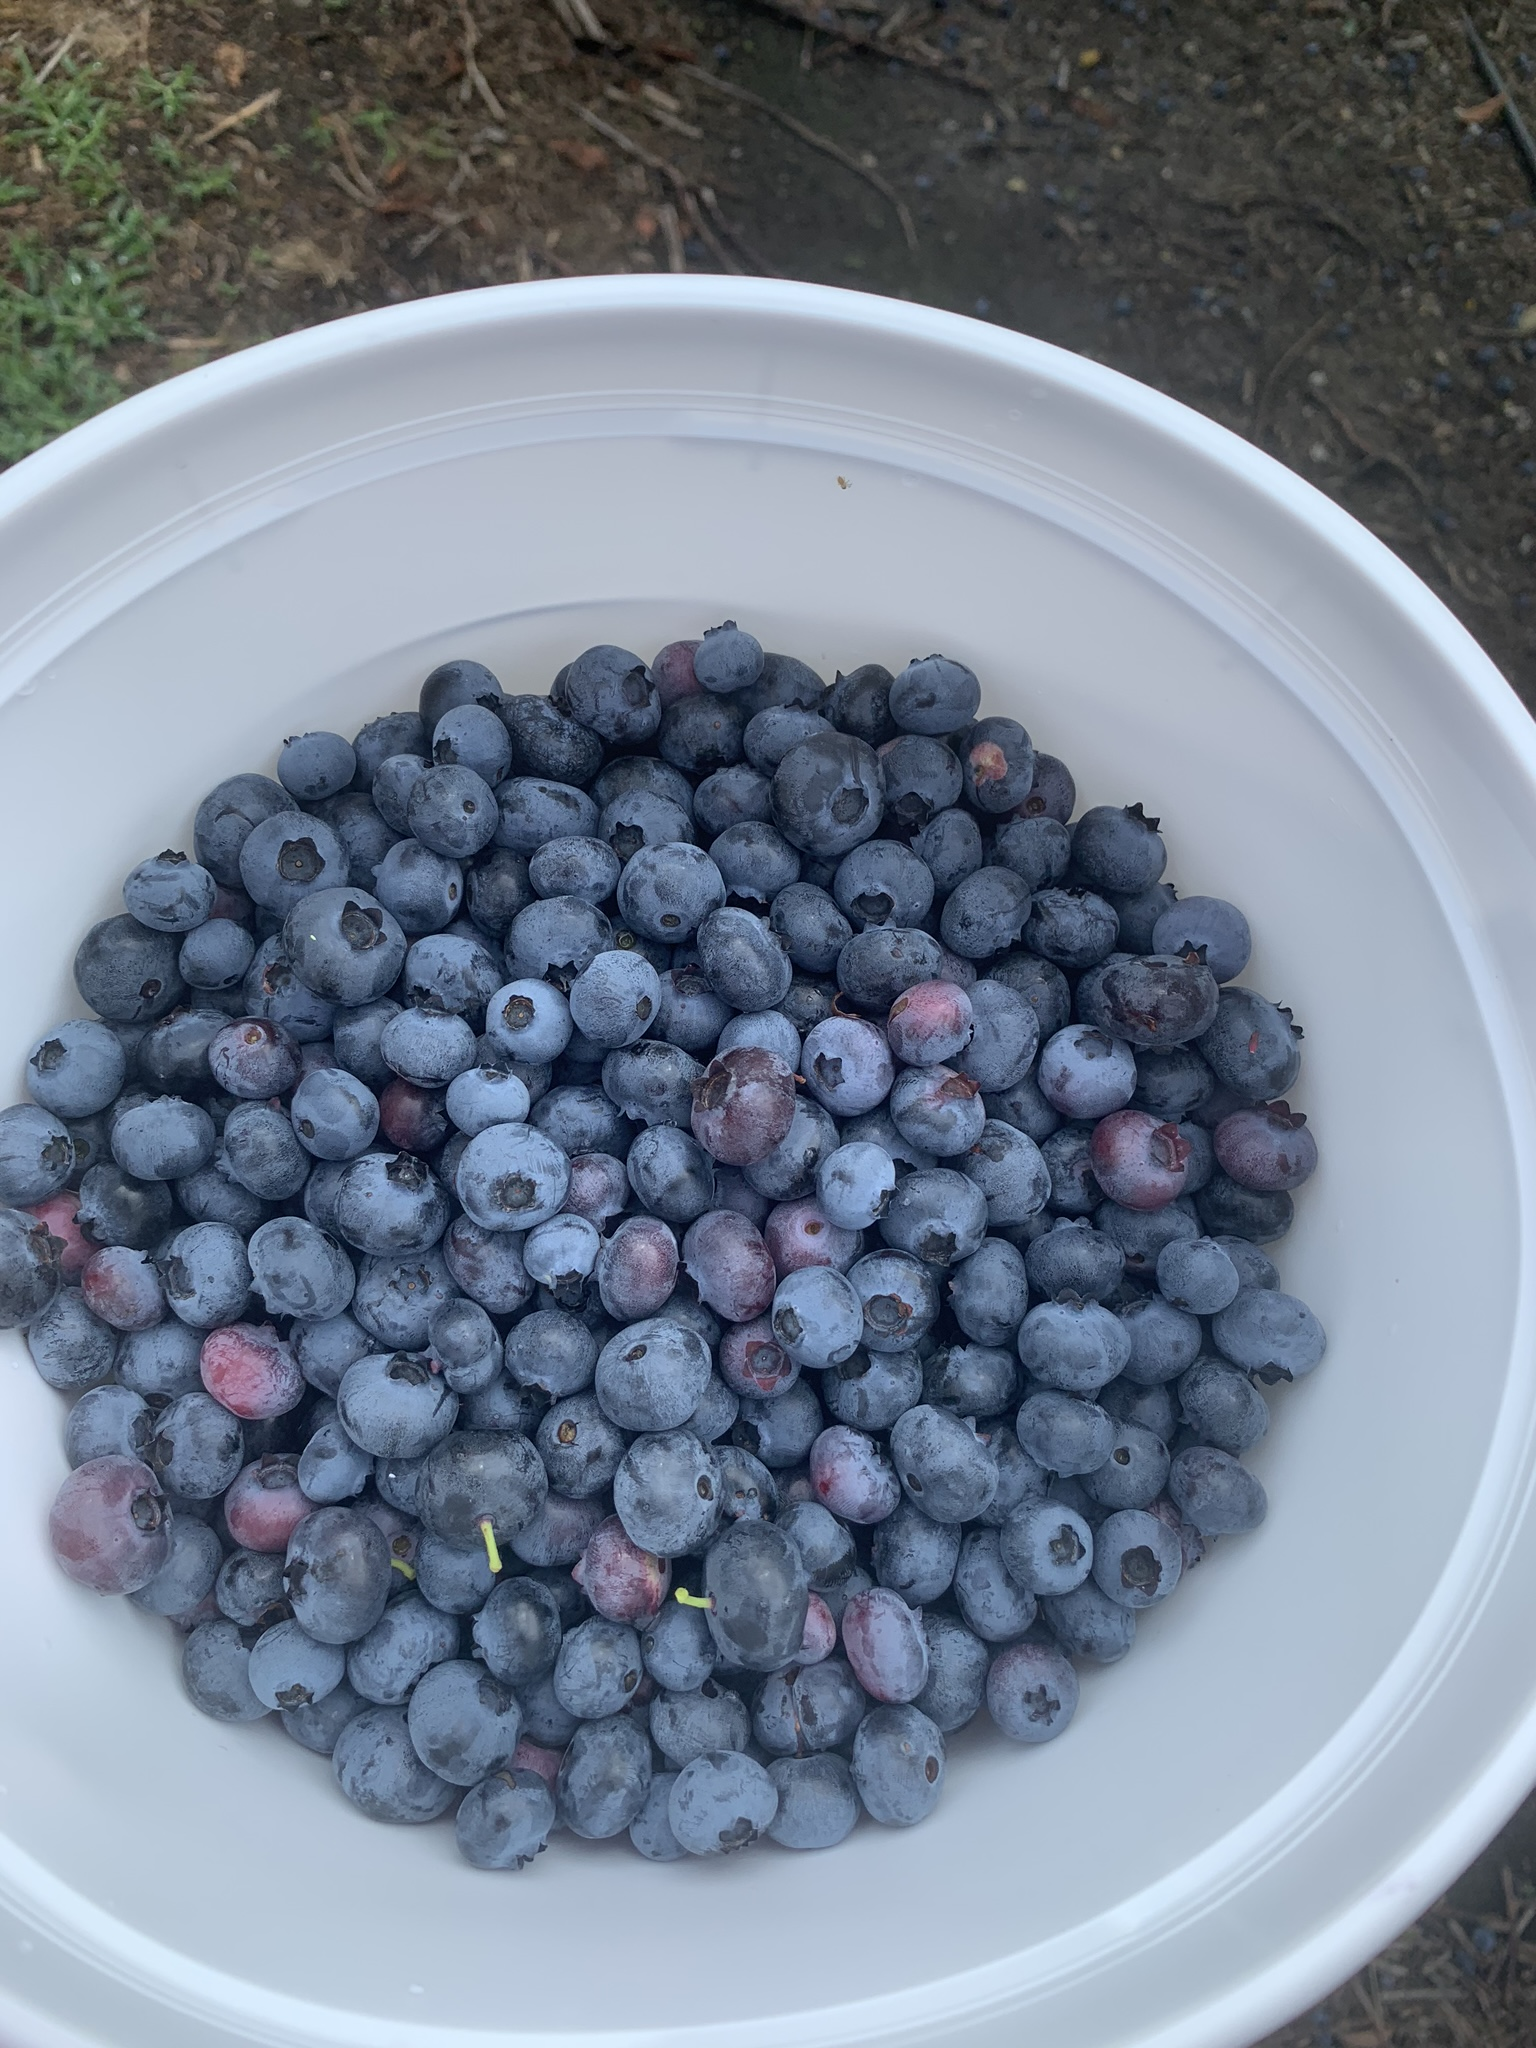 Blueberries in a bucket. Each bucket holds about 4 to 5 pounds.